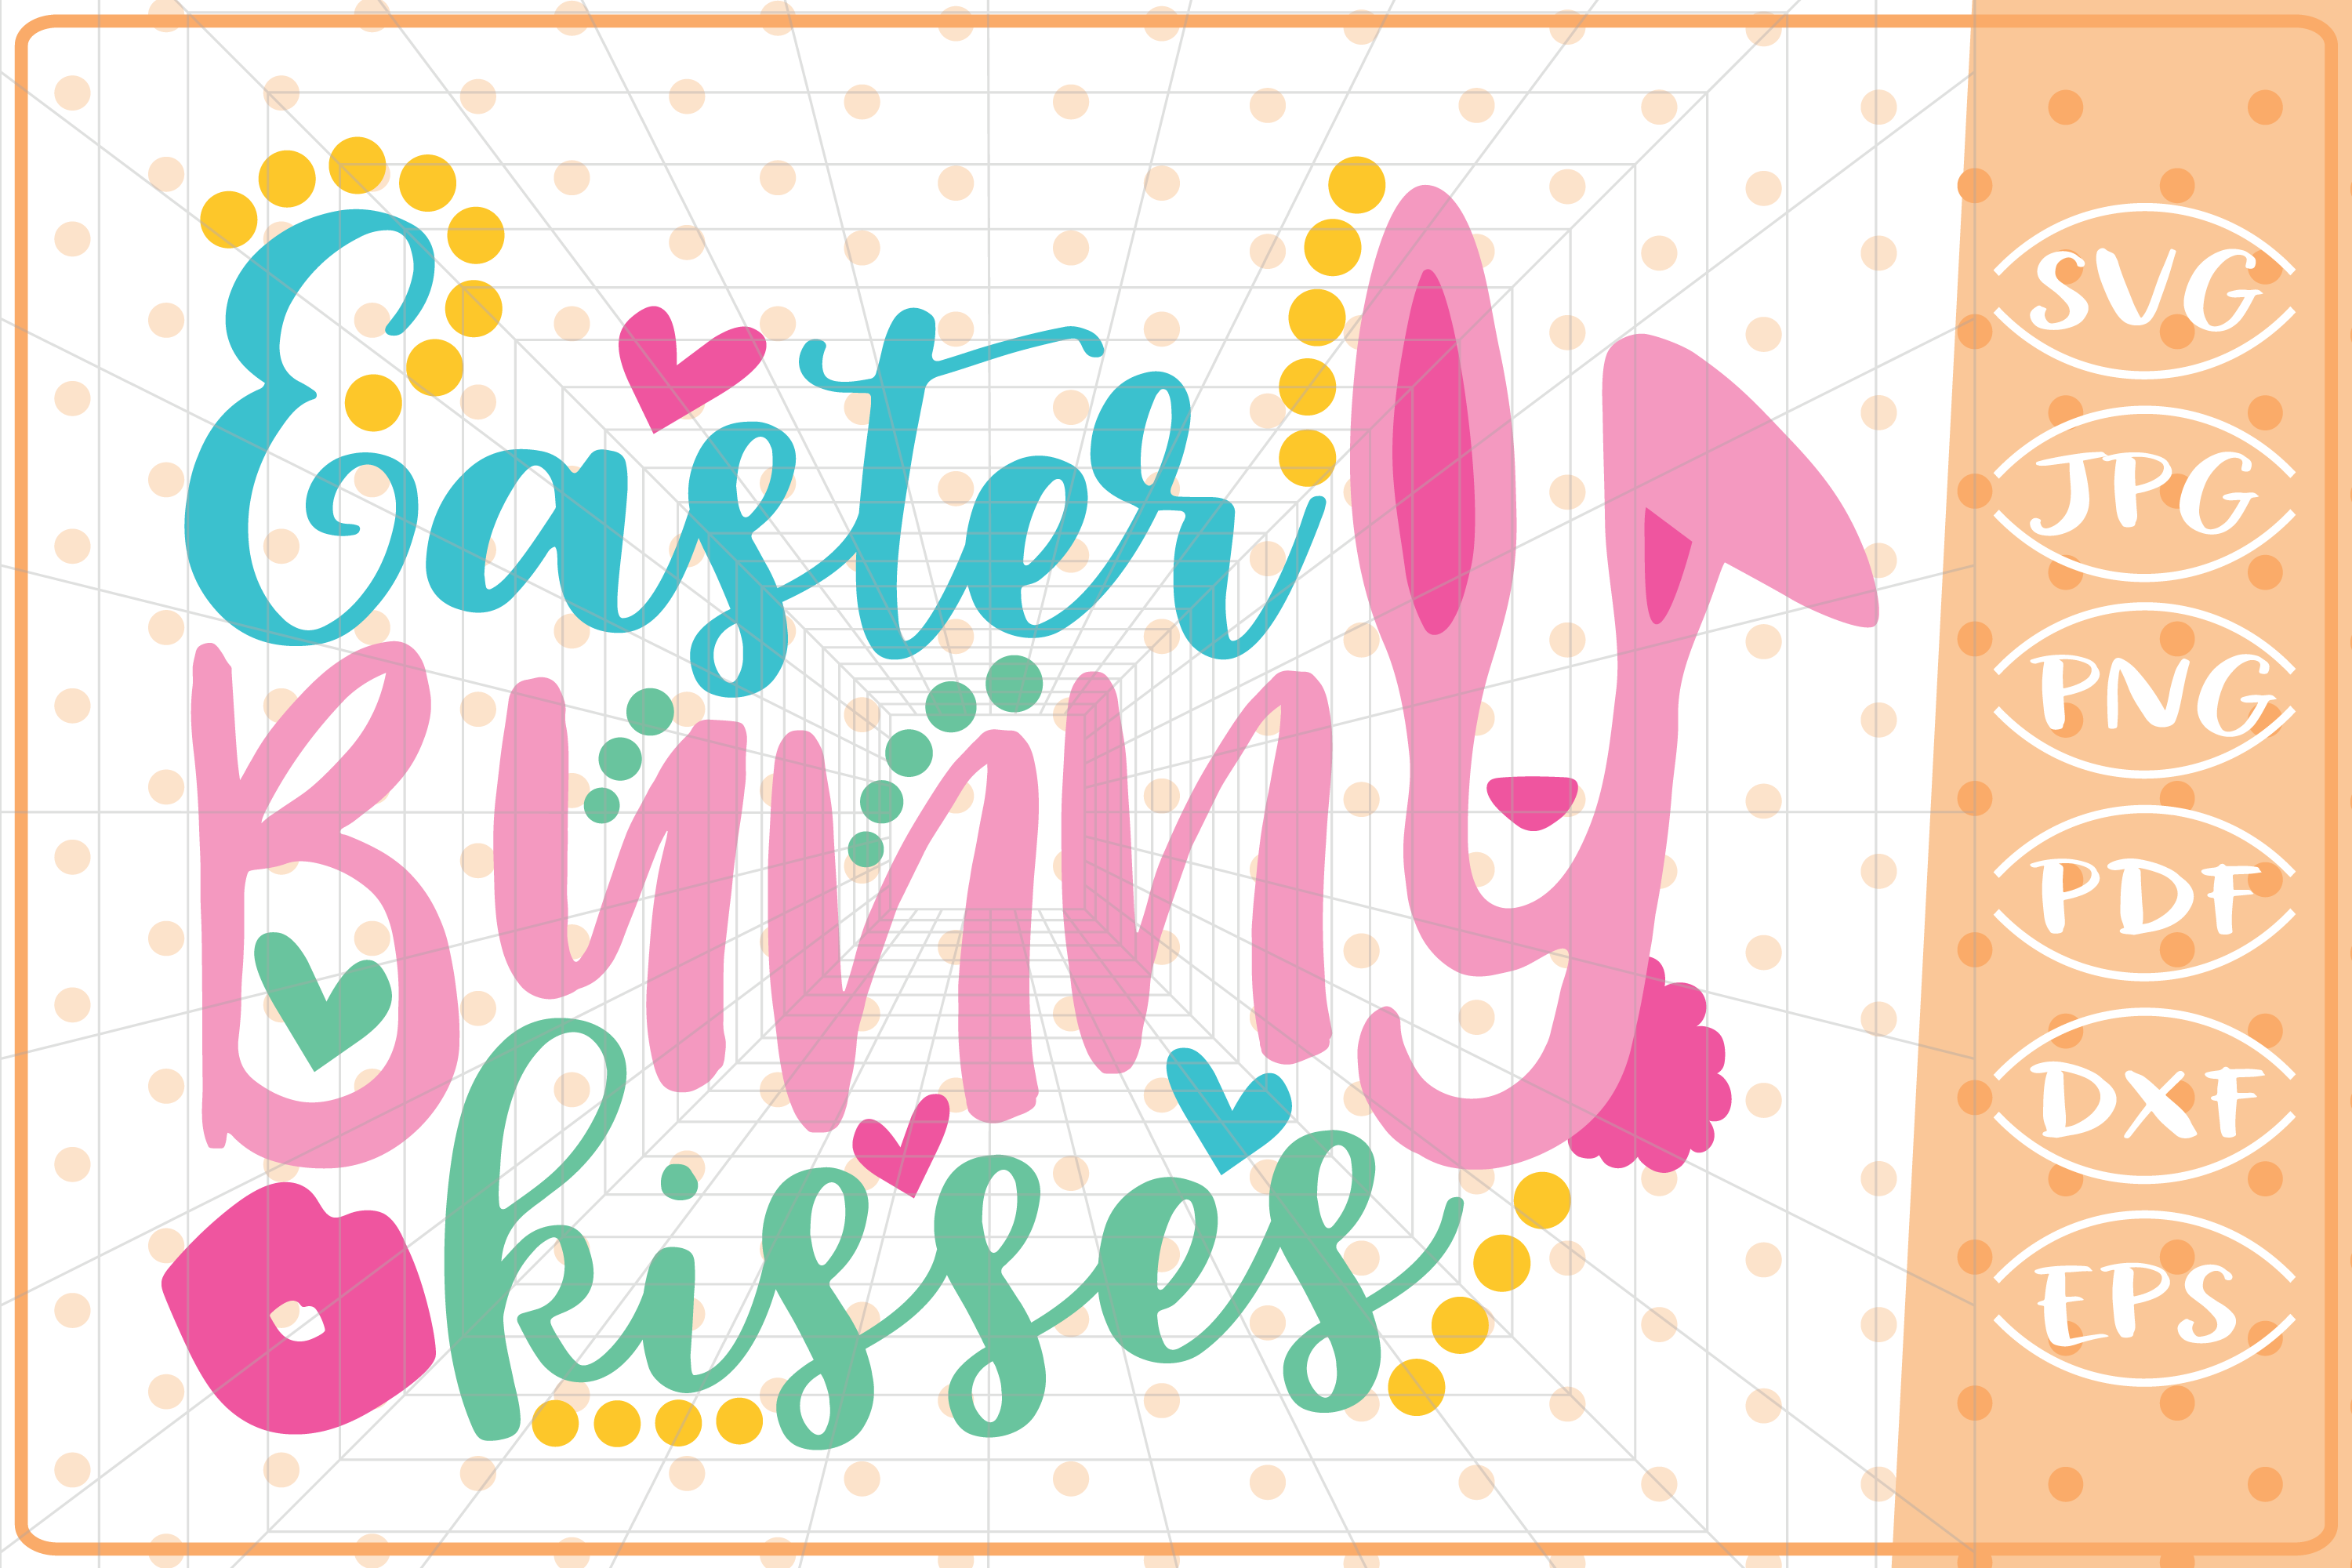 Download Free Easter Bunny Kisses Graphic By Cute Graphic Creative Fabrica for Cricut Explore, Silhouette and other cutting machines.